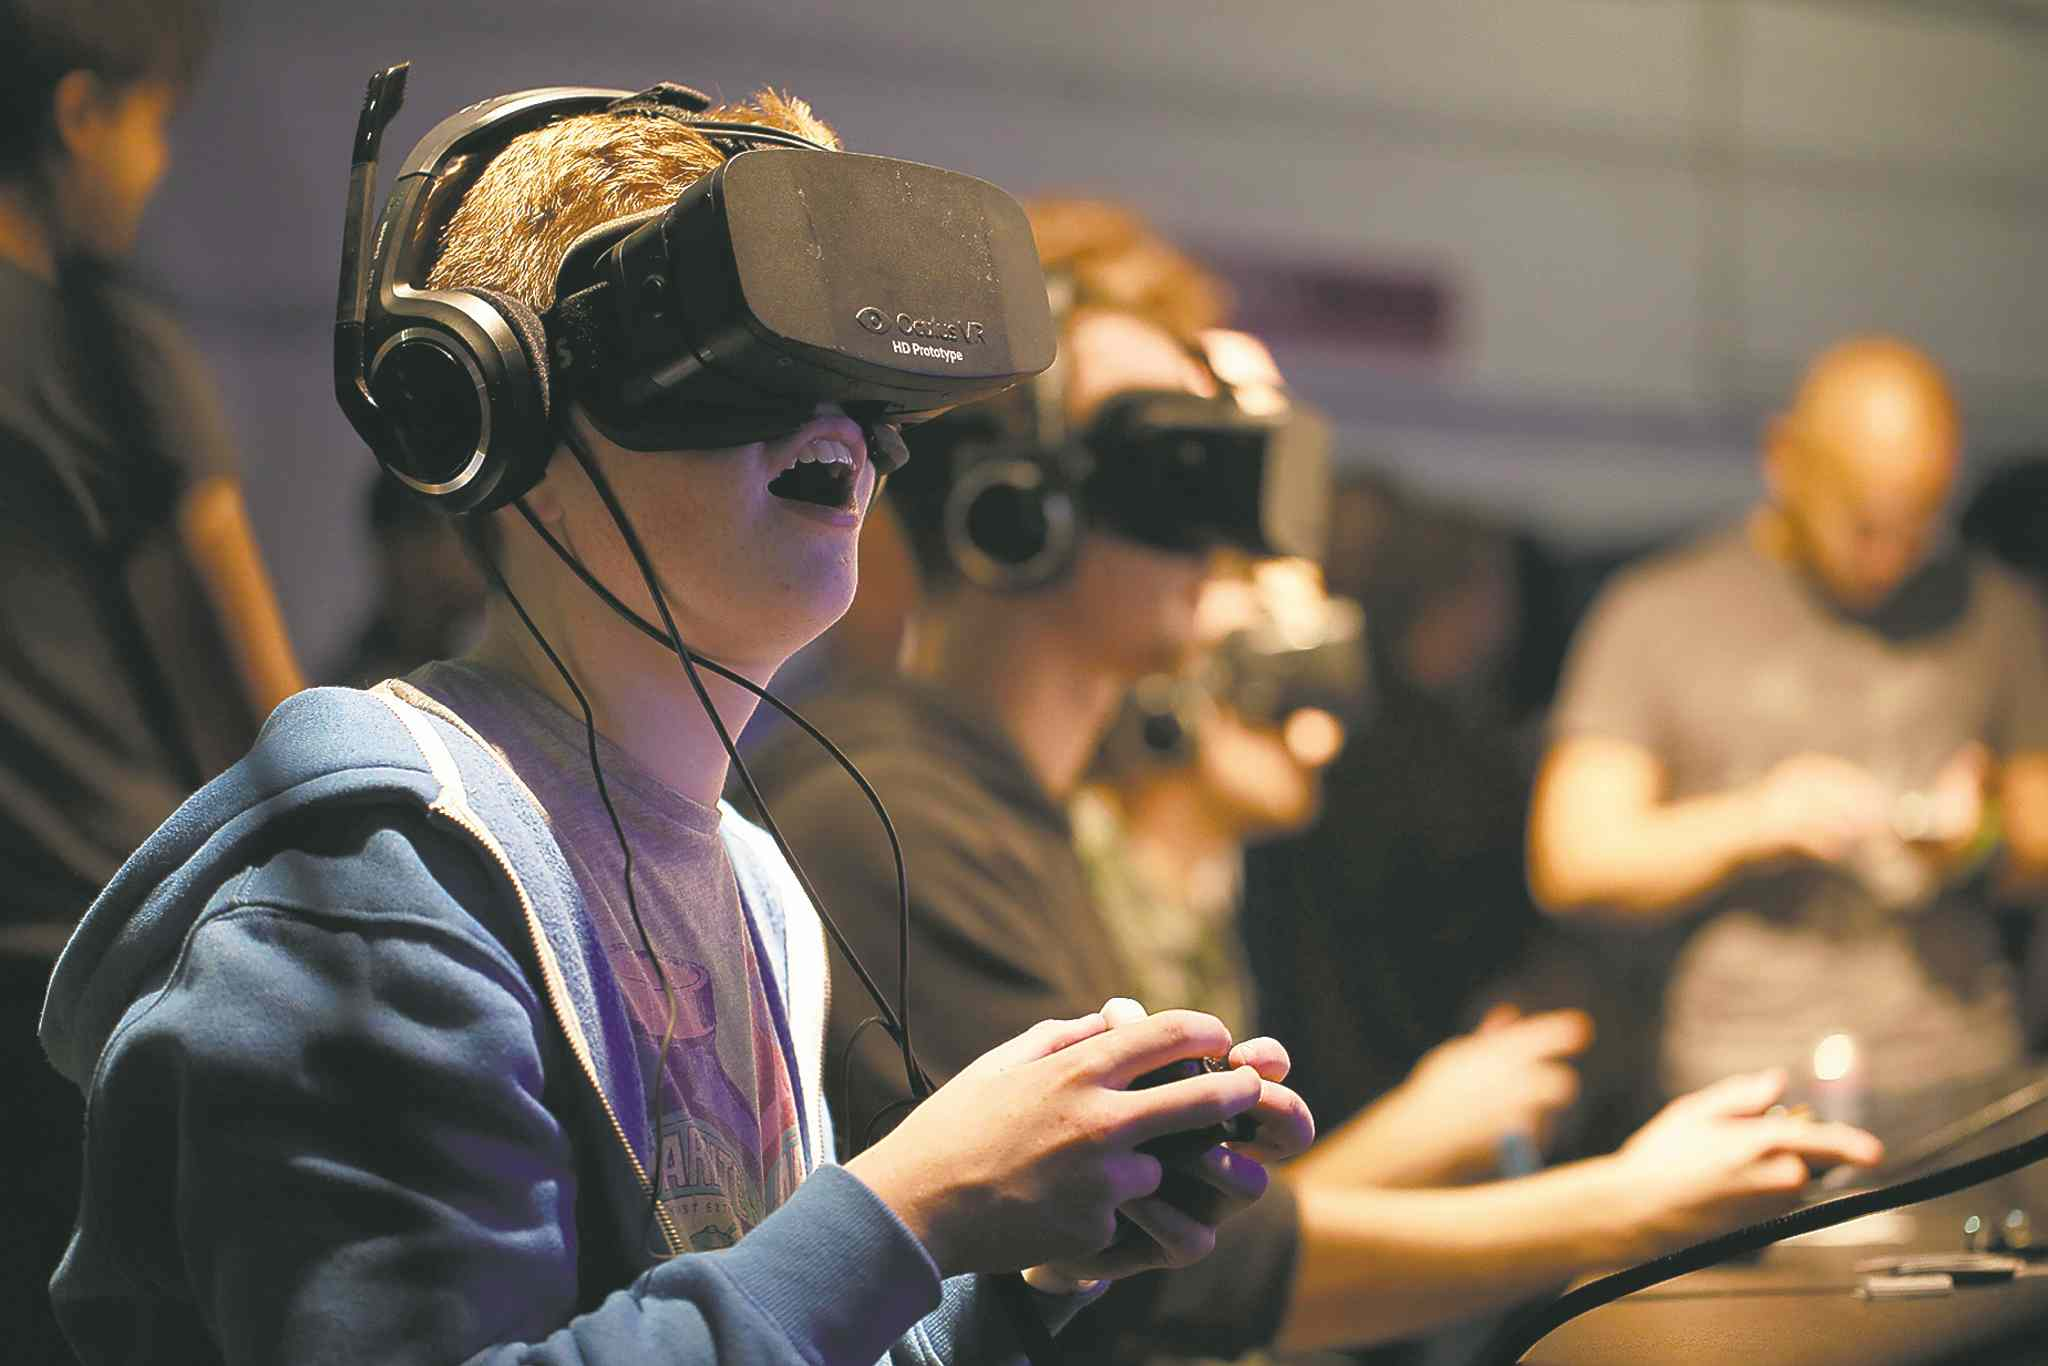 Matthew Lloyd / Bloomberg News